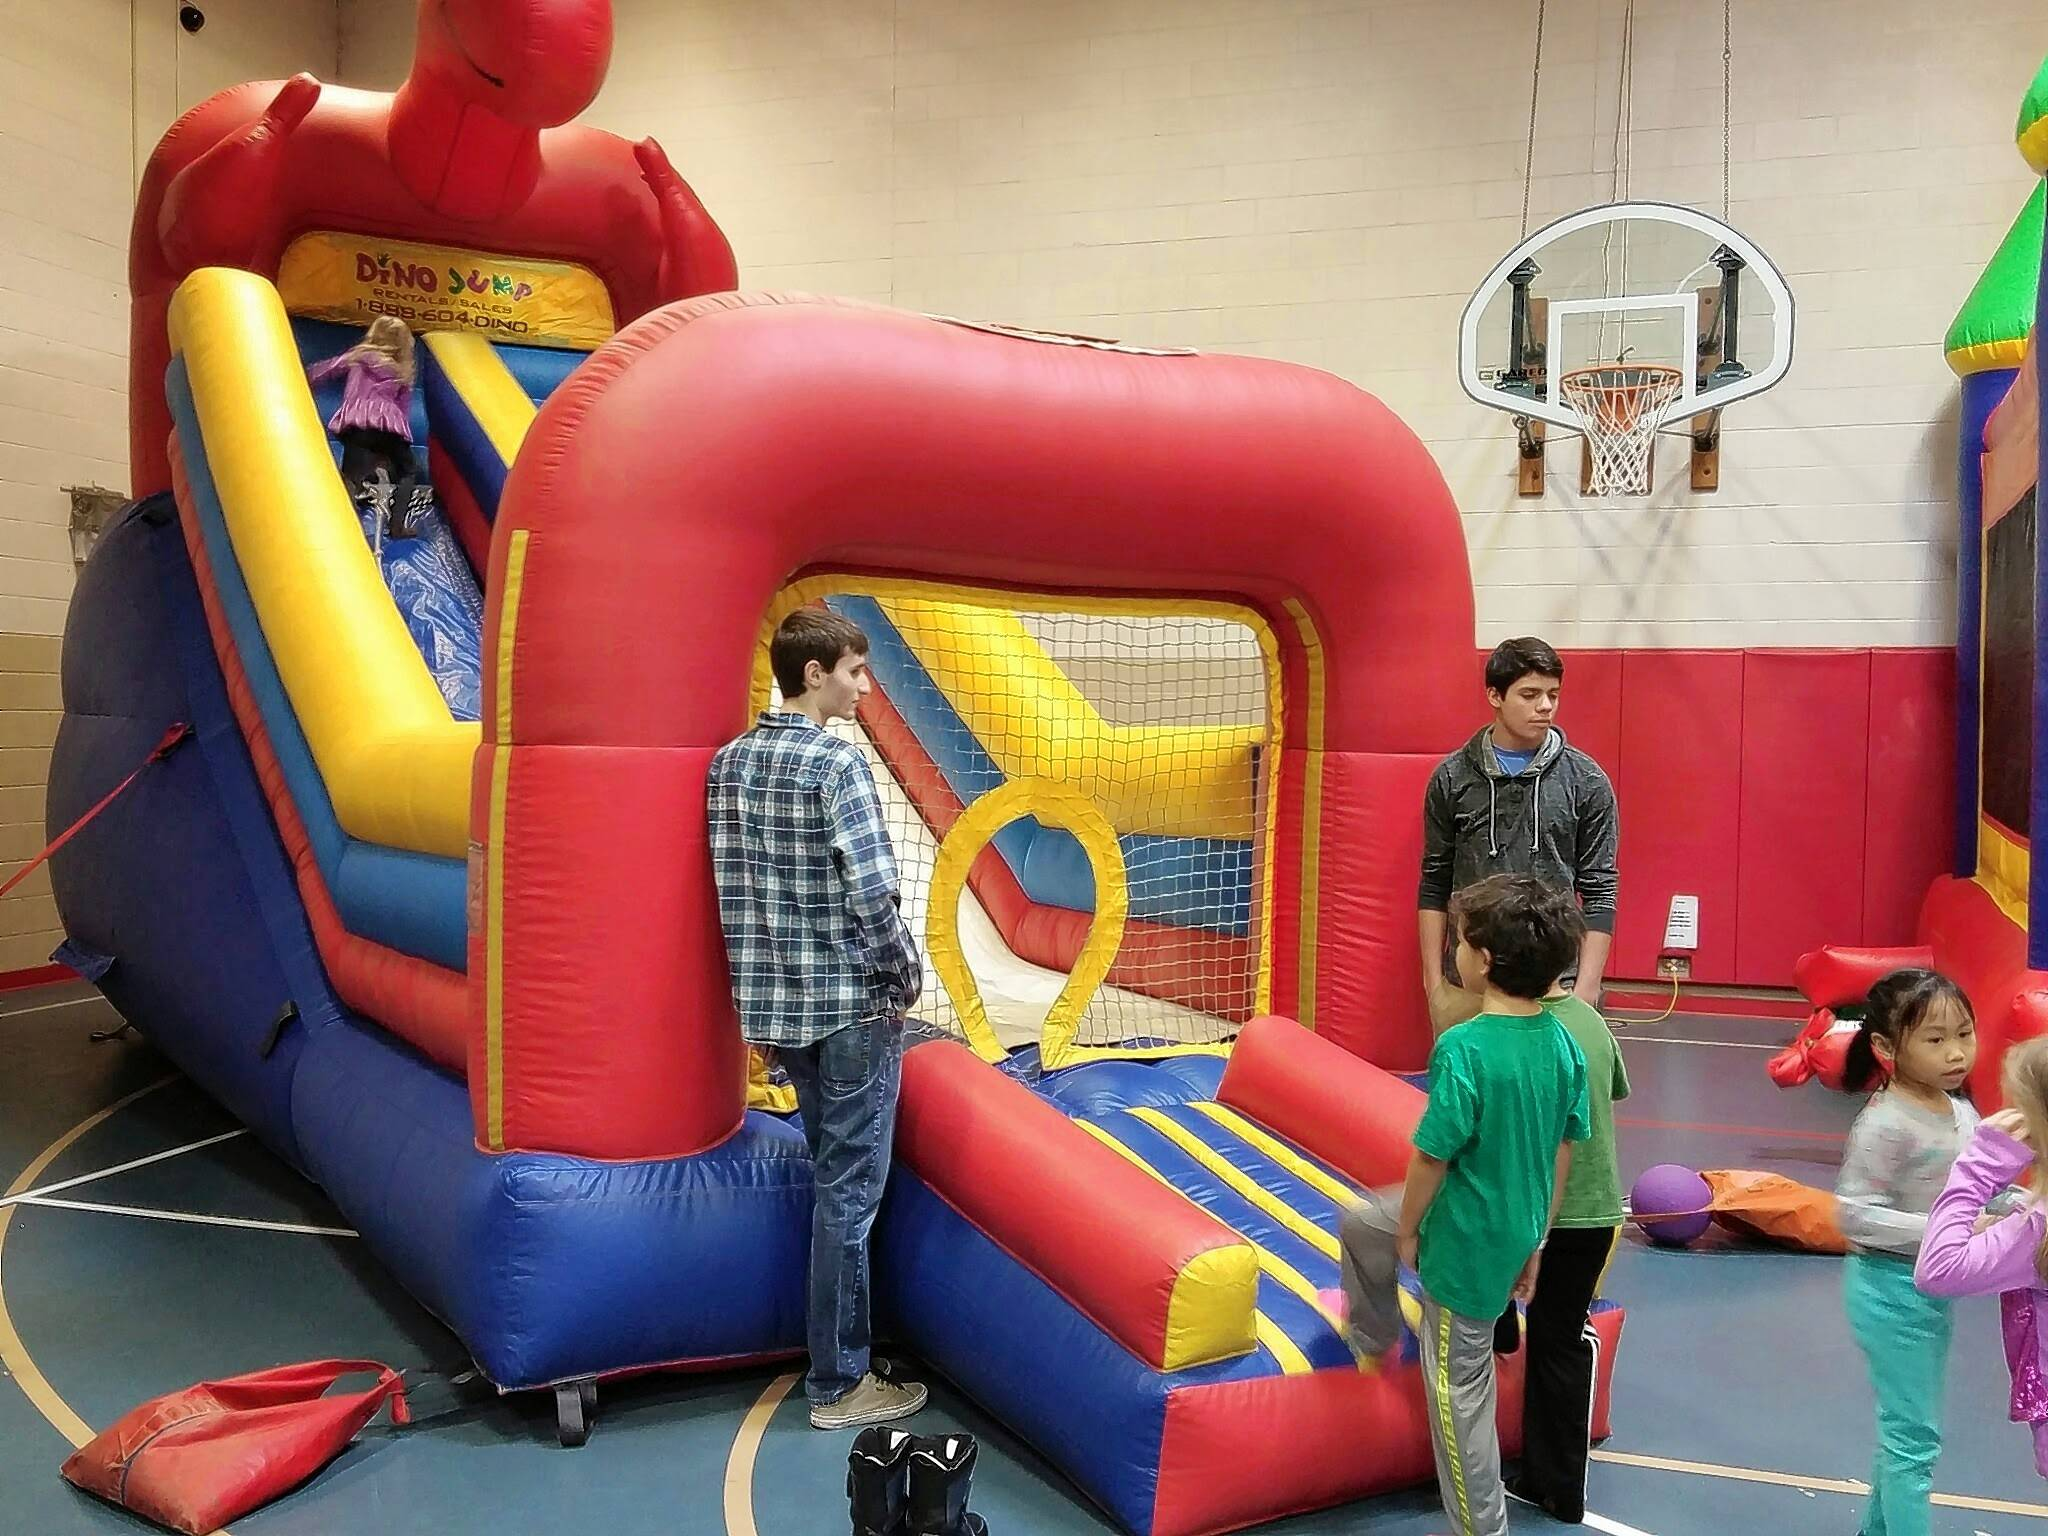 If outdoor activities on tap at Addison Park District's Winterfest prove too chilly, kids will find inflatable fun indoors.